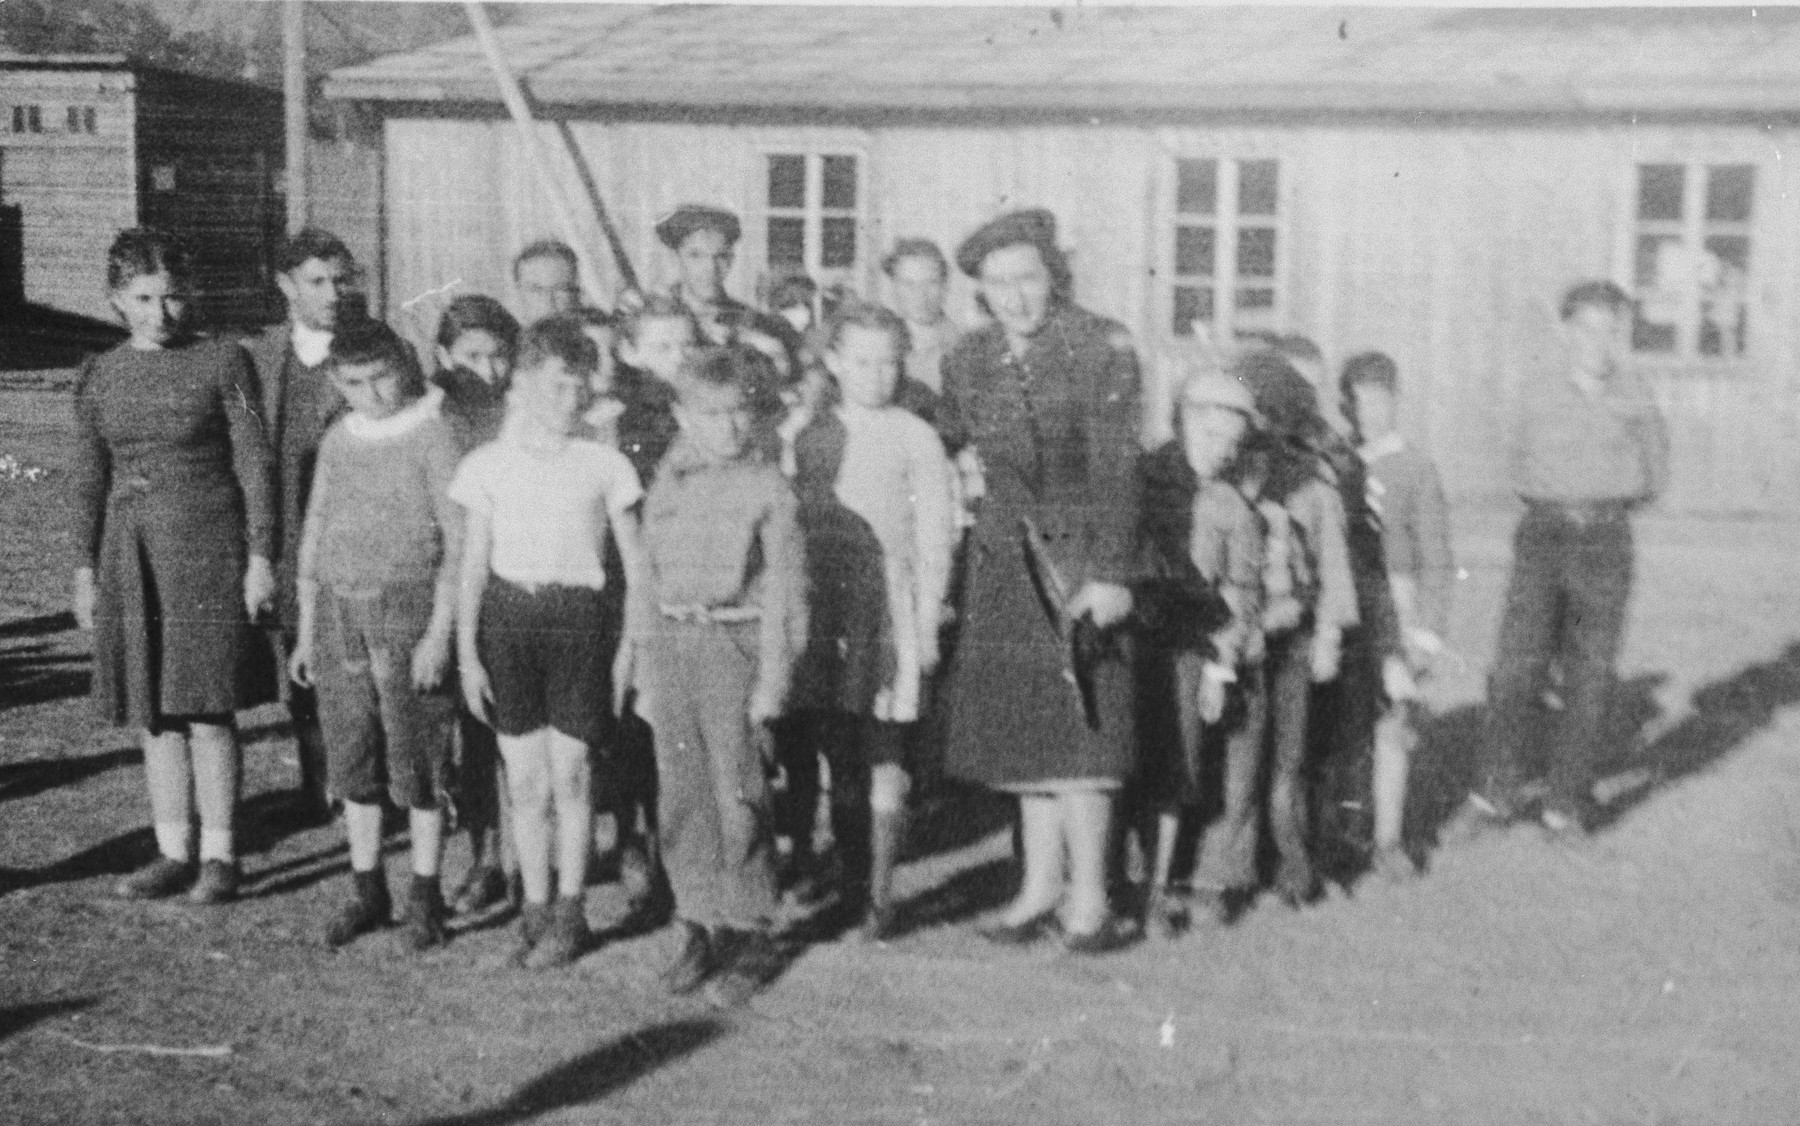 Chana Scheiner and an UNRRA representative accompany a group of young children on a transport from Poland to Italy.